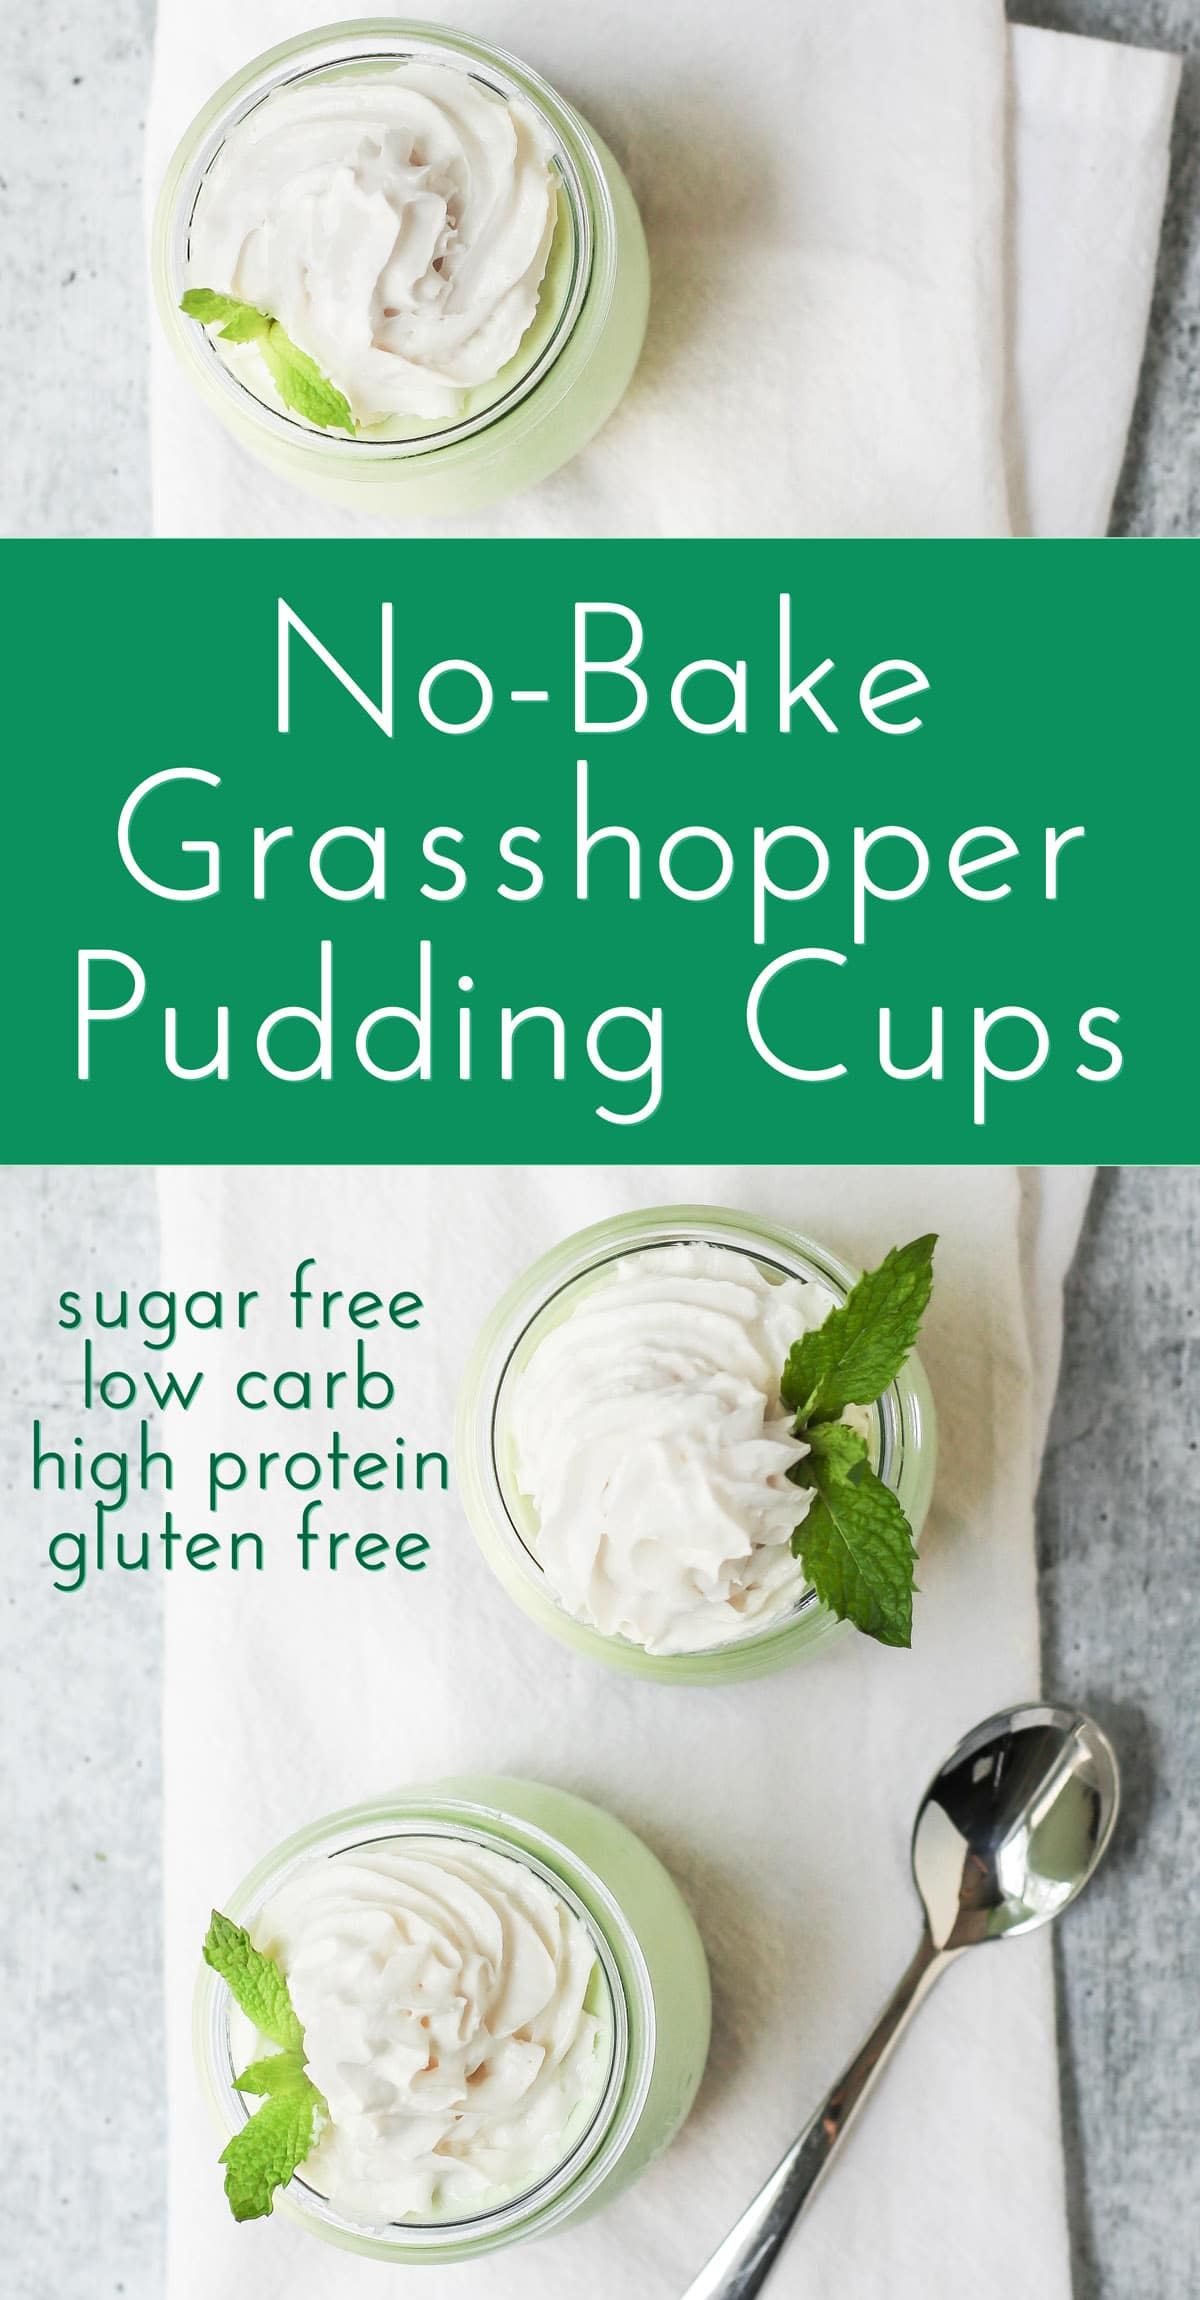 Healthy Easy No-Bake Grasshopper Pudding Cups